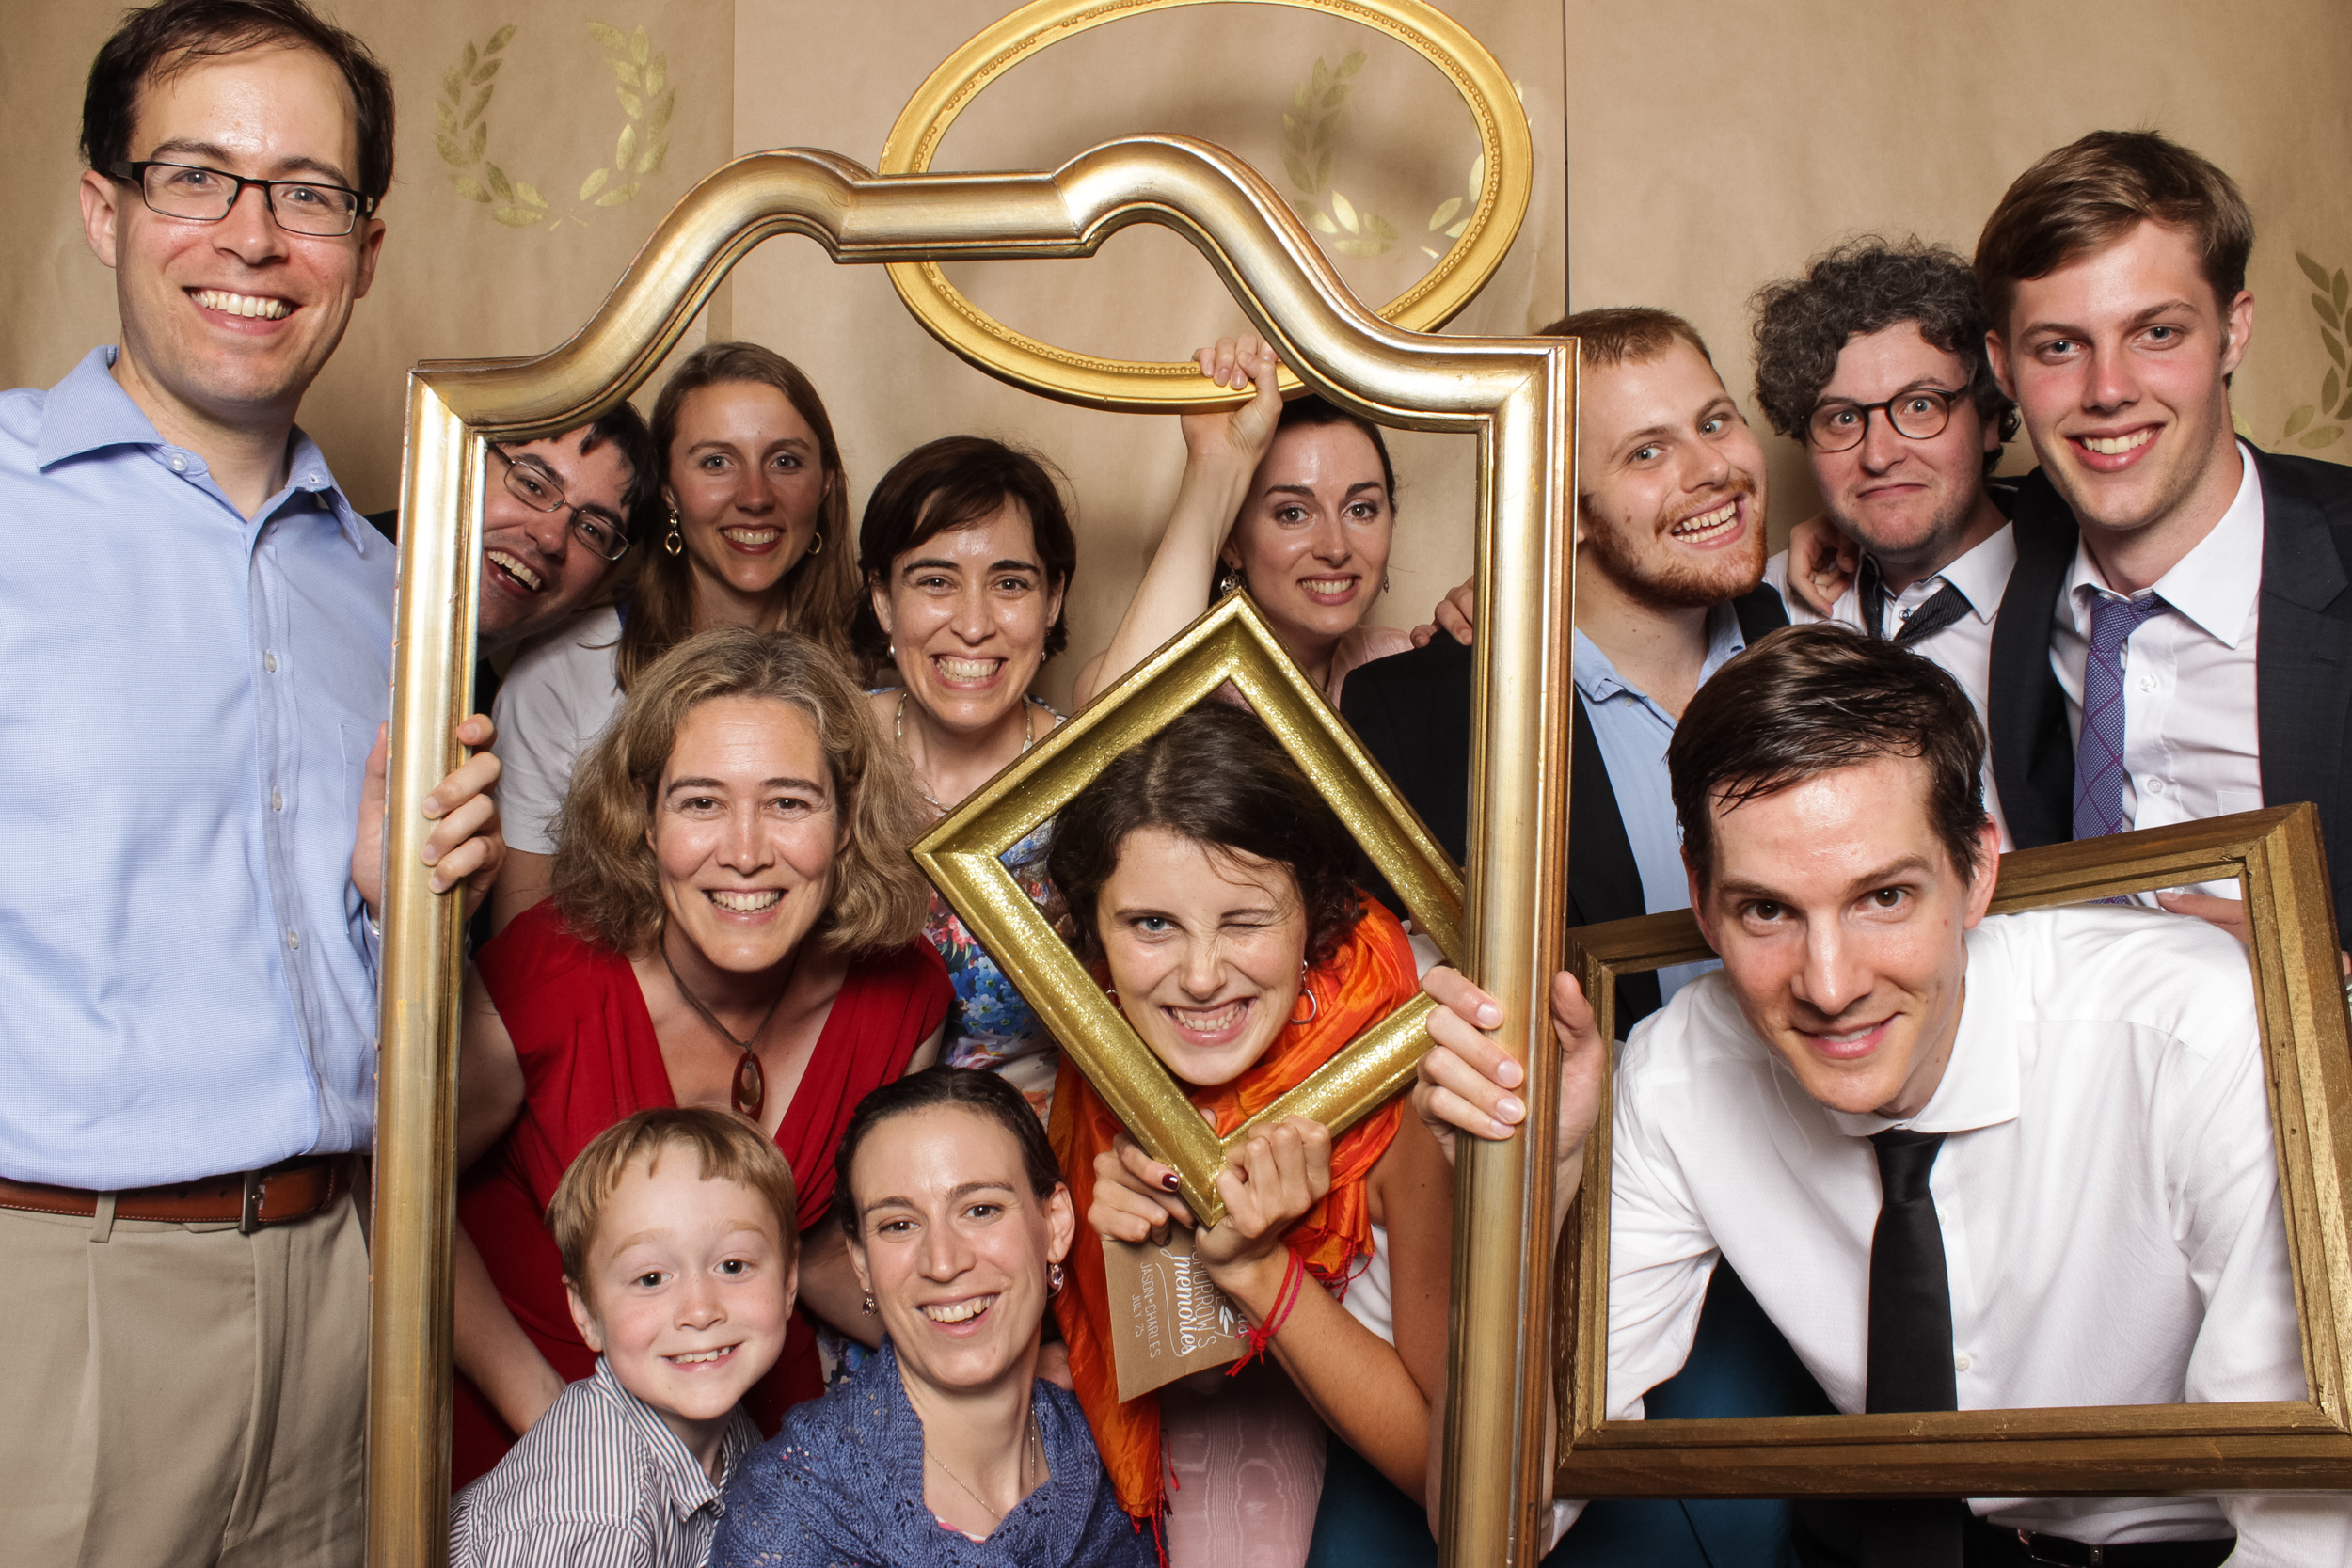 ottawa photo booth photograph from a wedding